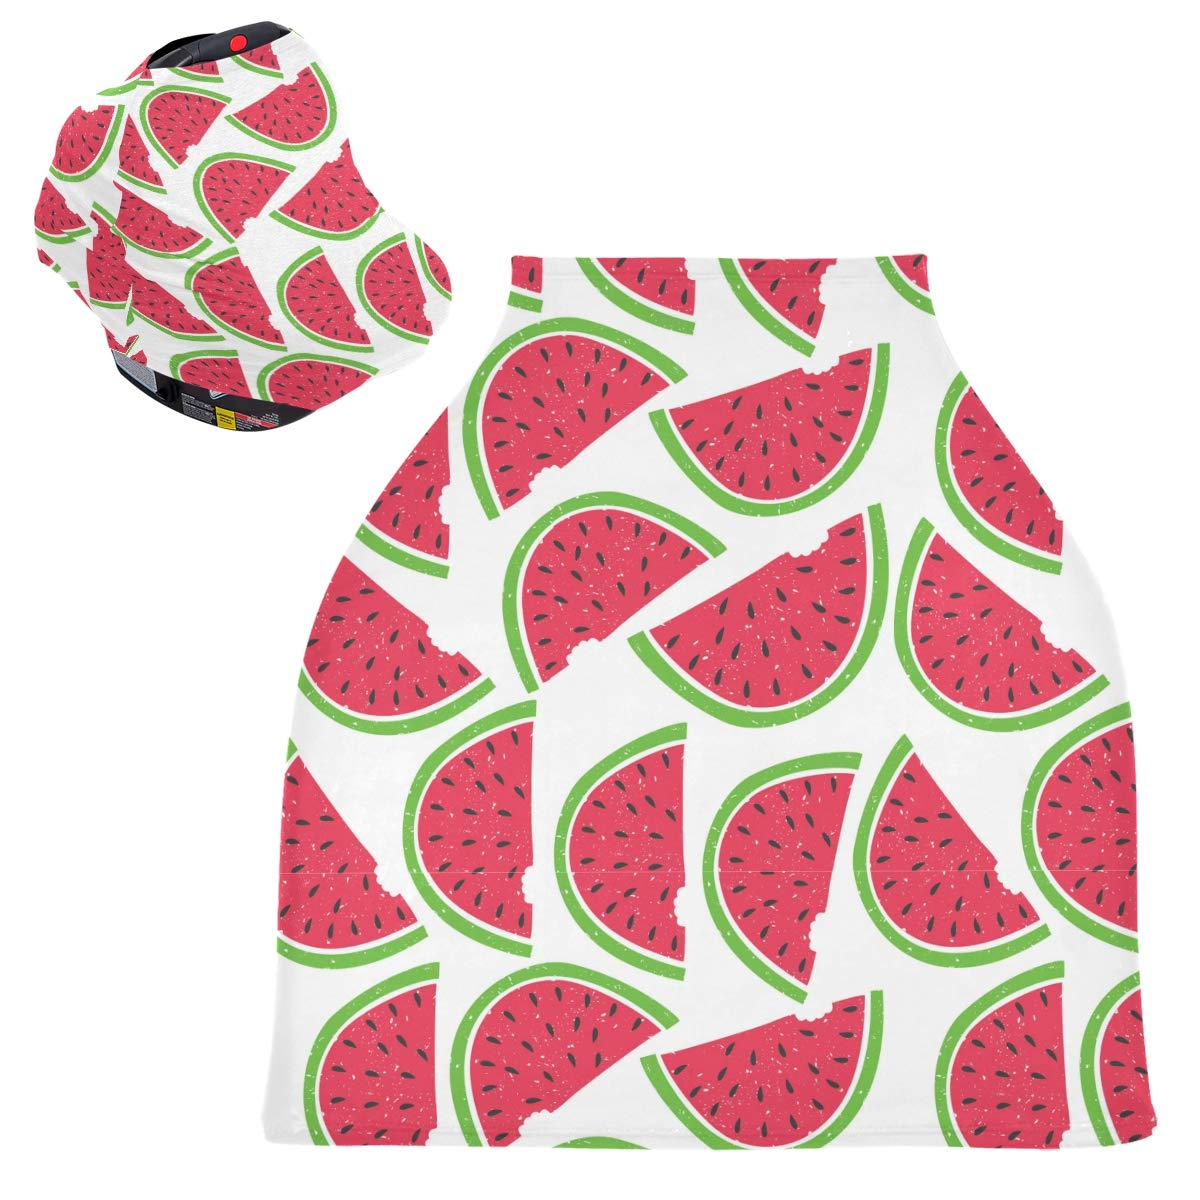 Stretchy Baby Car Seat Canopy - Patron Sandia Watermelon Infant Stroller Cover Multi Use Carseat Canopy Nursing Cover for Baby Boy and Girl